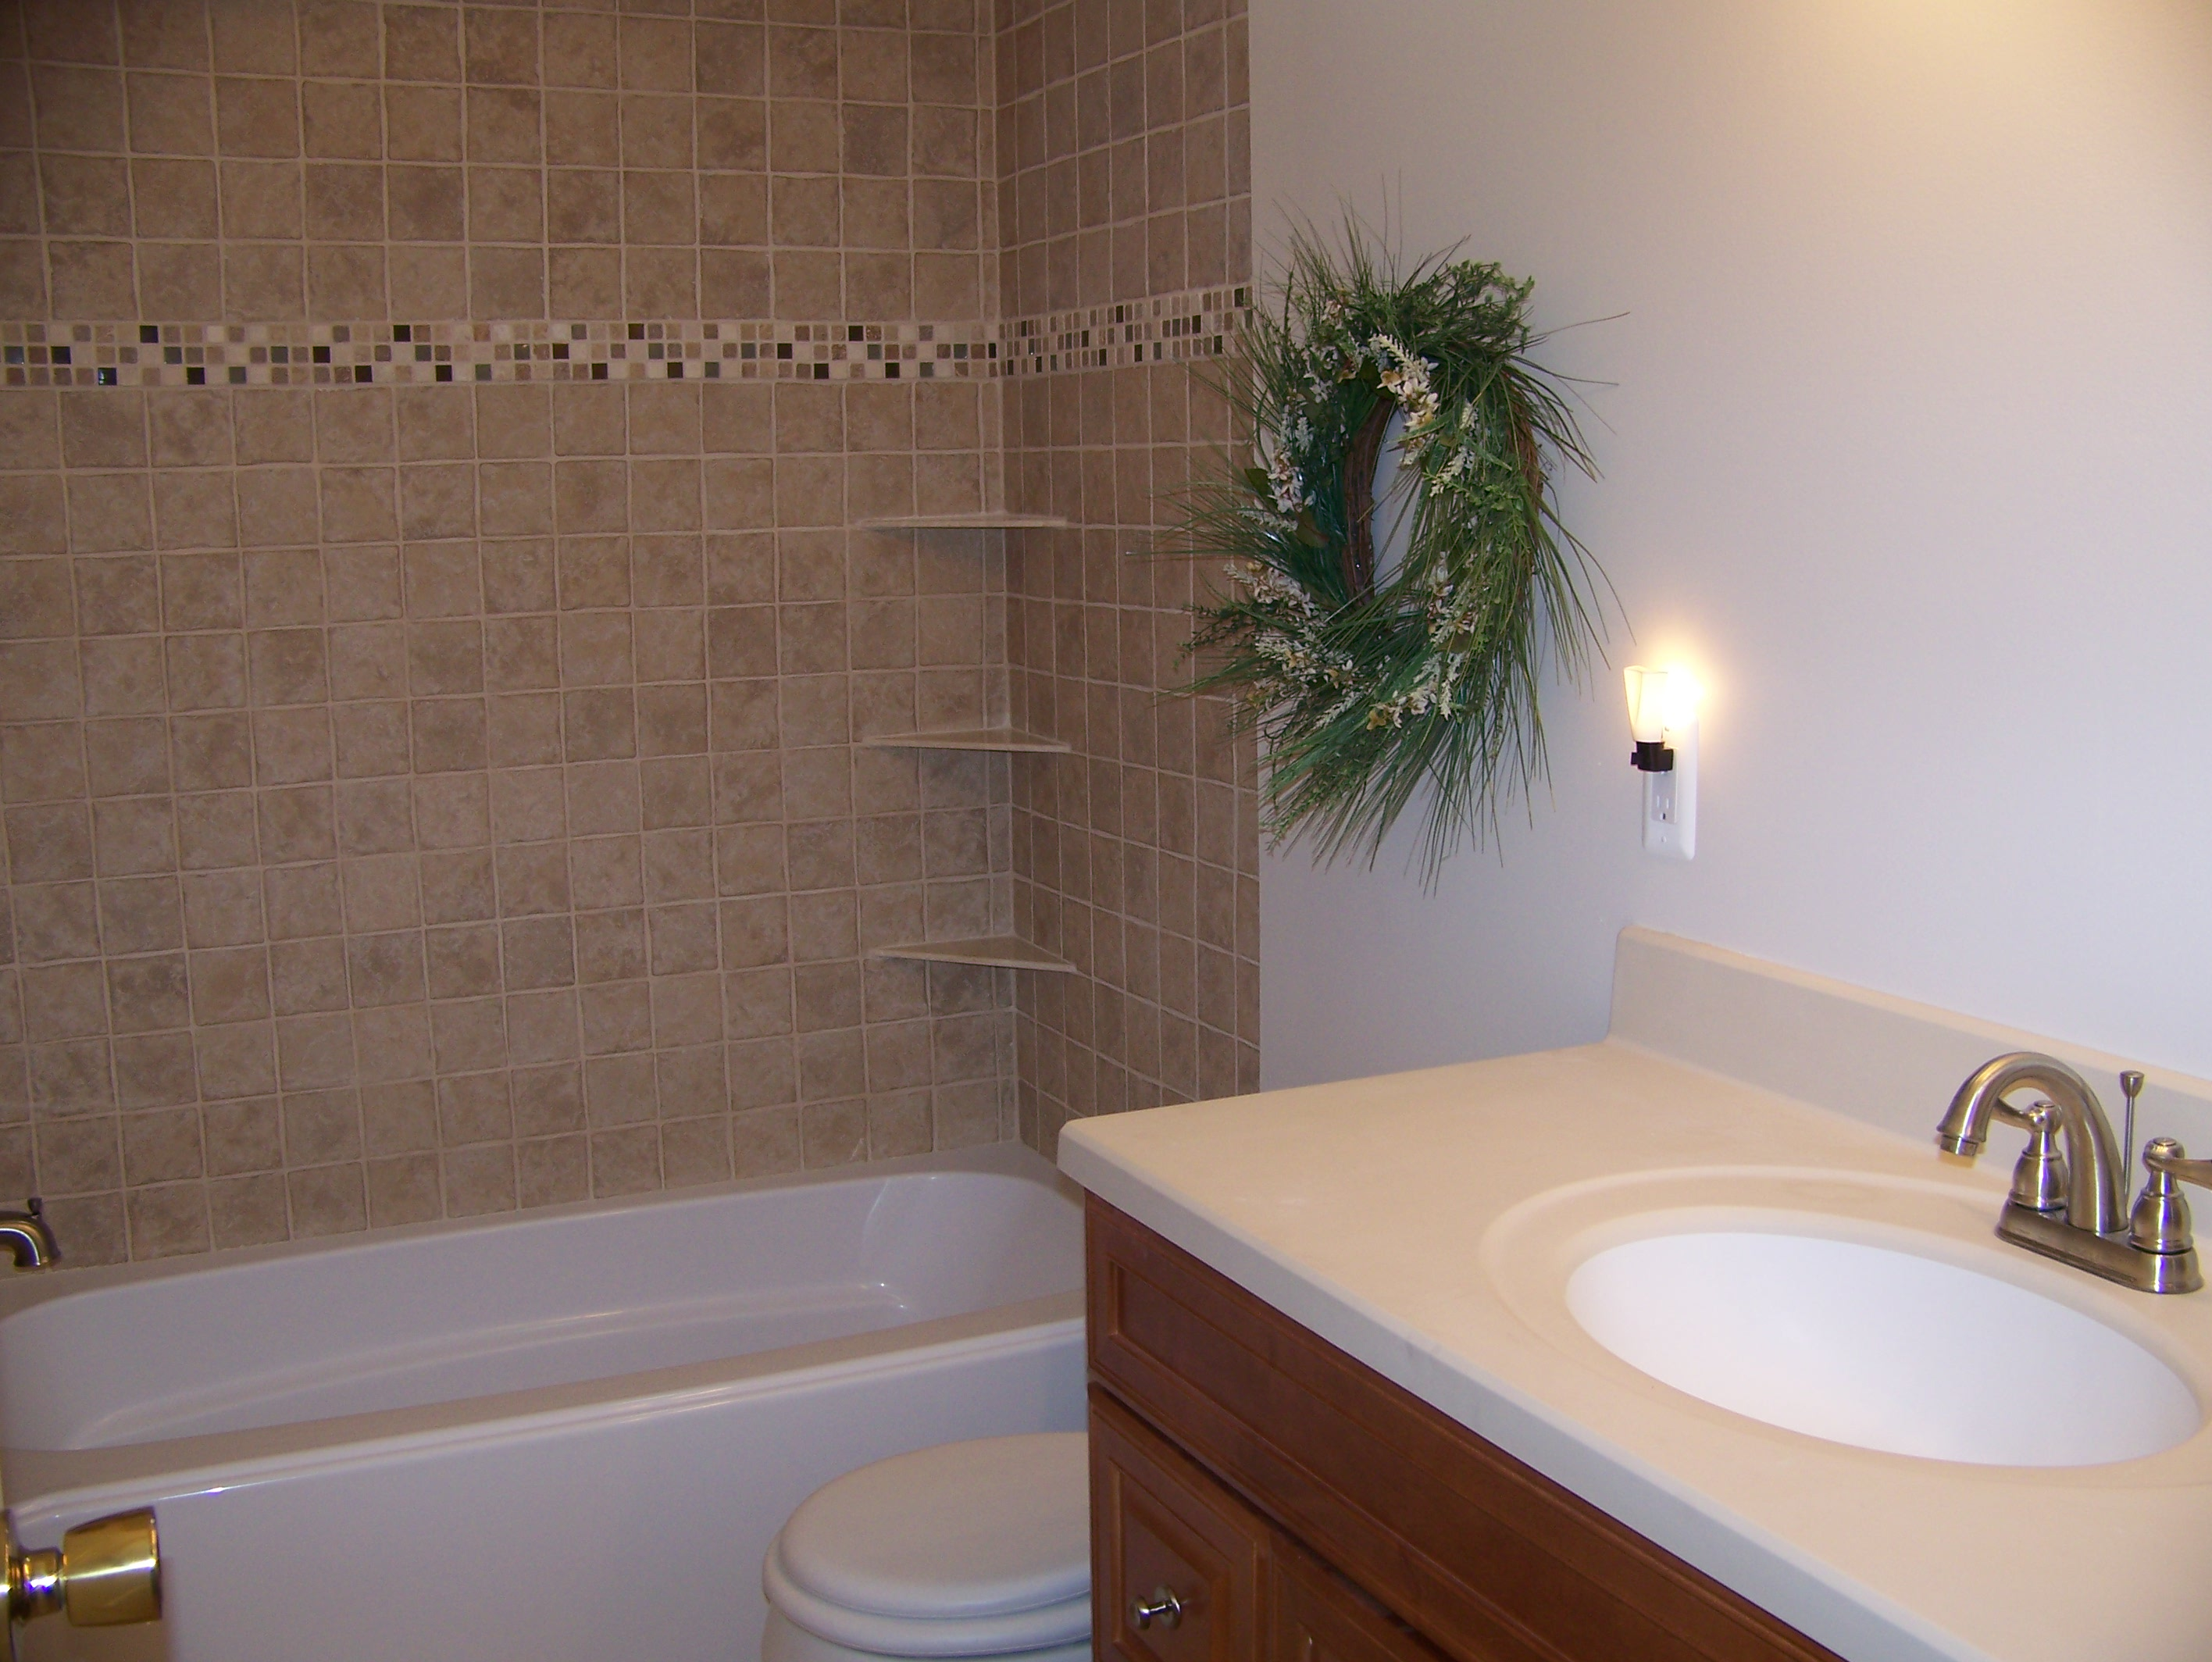 Canton michigan bathroom remodeling pictures for ideas for Bath remodel wyoming mi